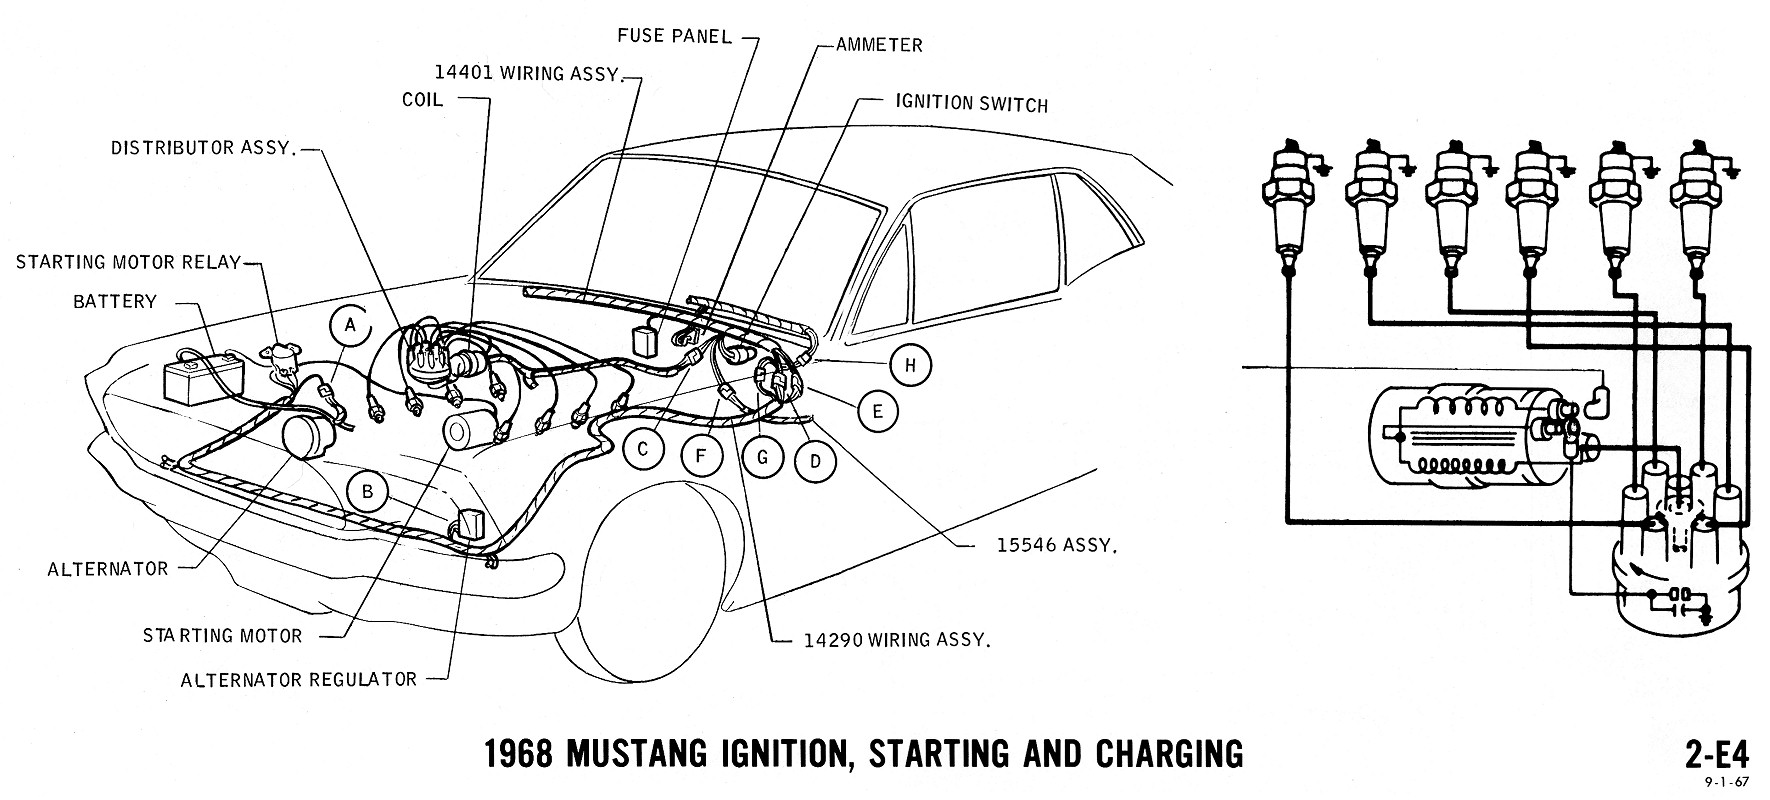 1968 Mustang Wiring Diagram Vacuum Schematics on vw bug coil wiring diagram